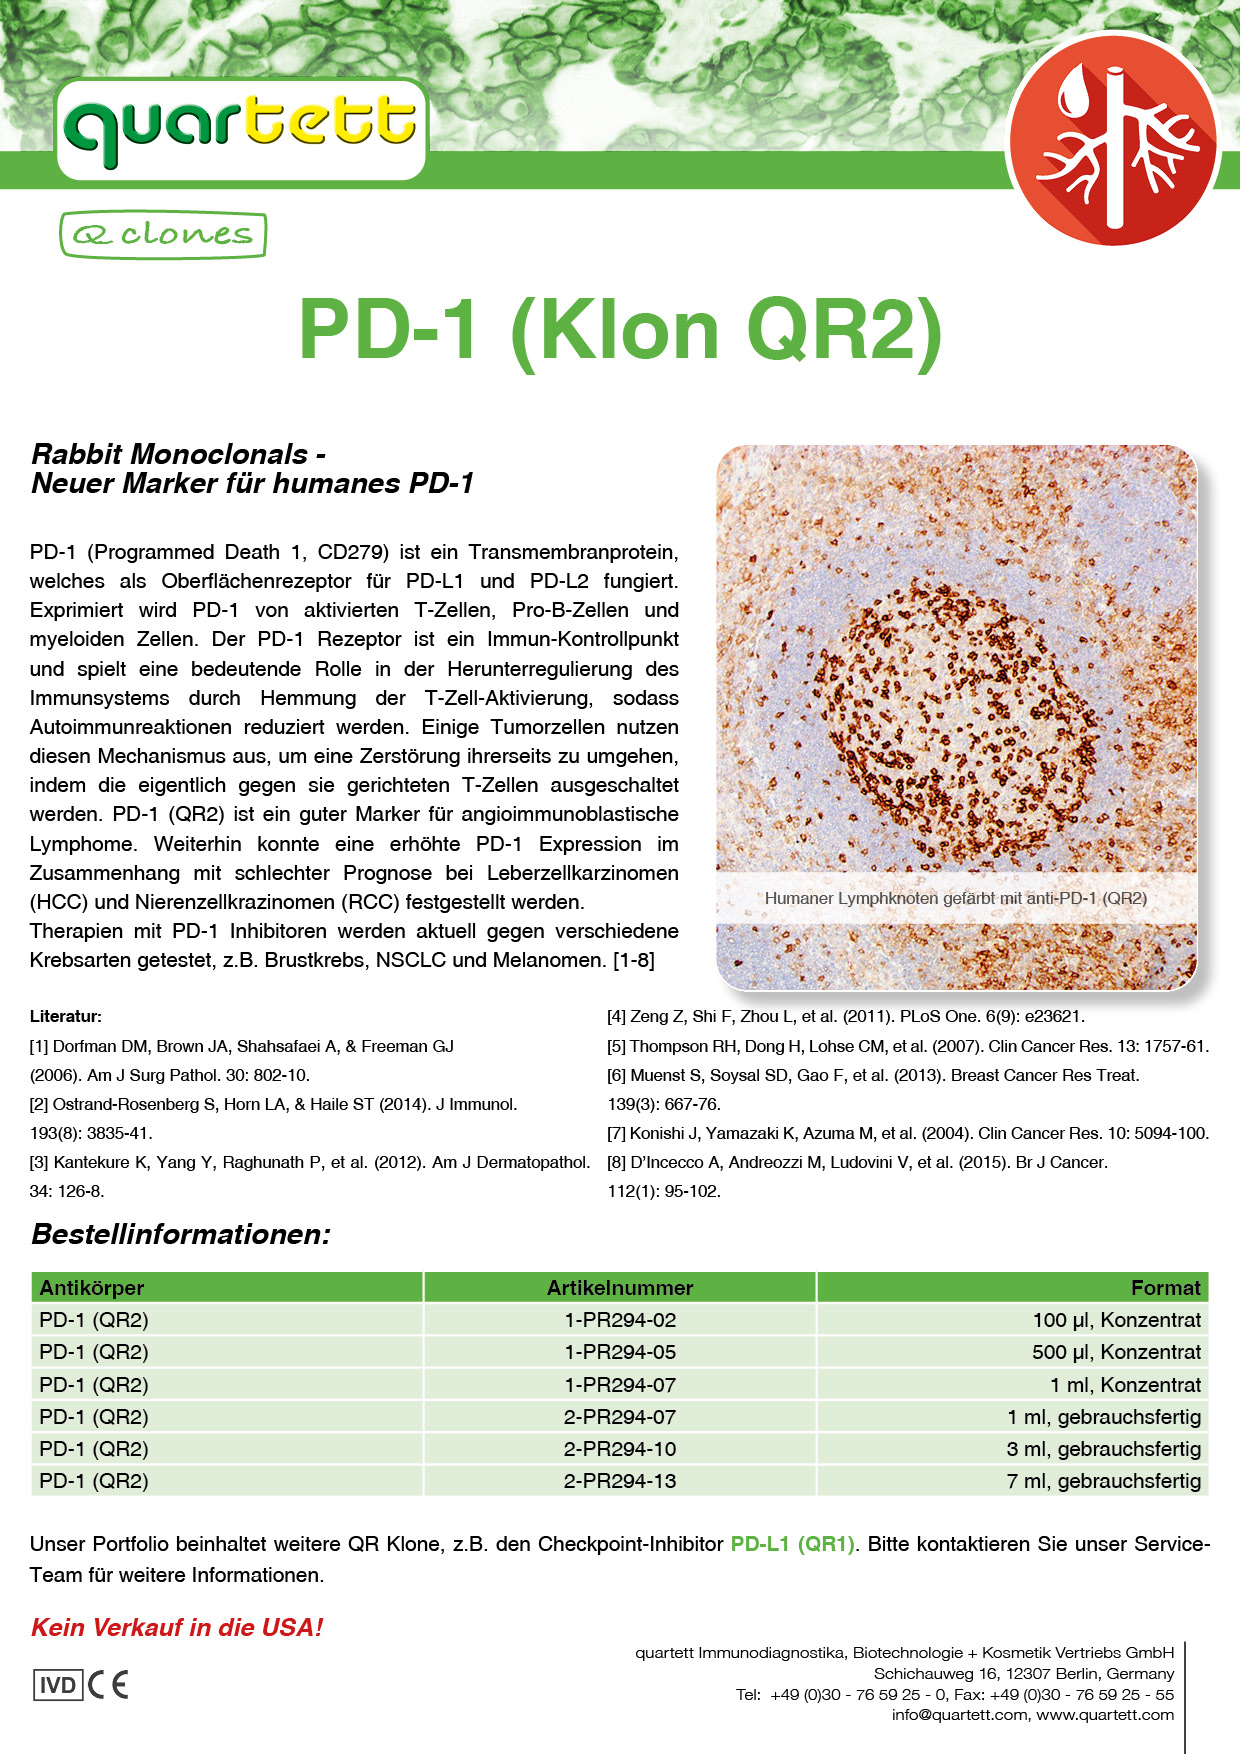 PD-1 (QR2) -PR294- (Deutsch & English)